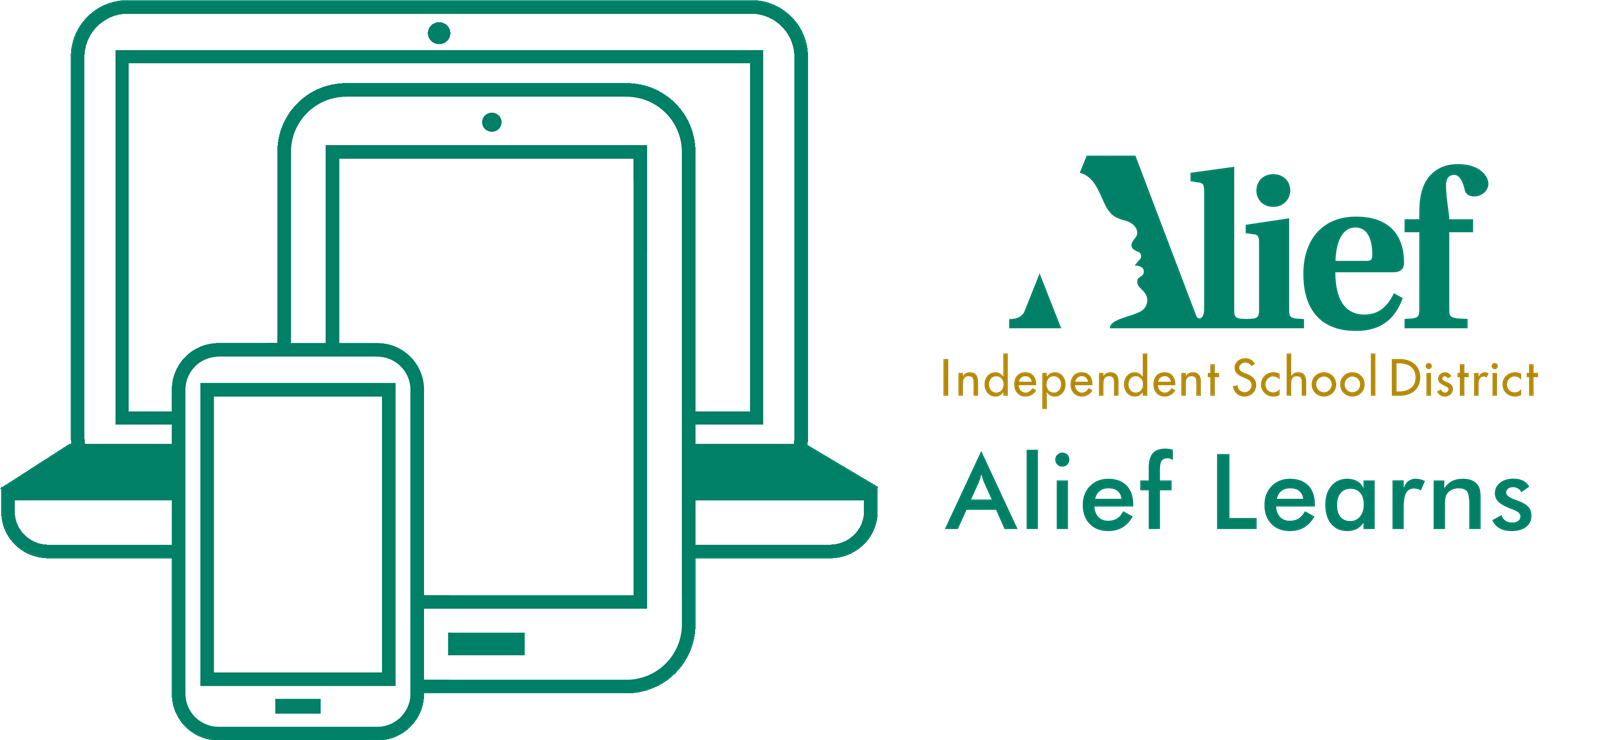 Alief ISD logo with Alief Learns text and devices